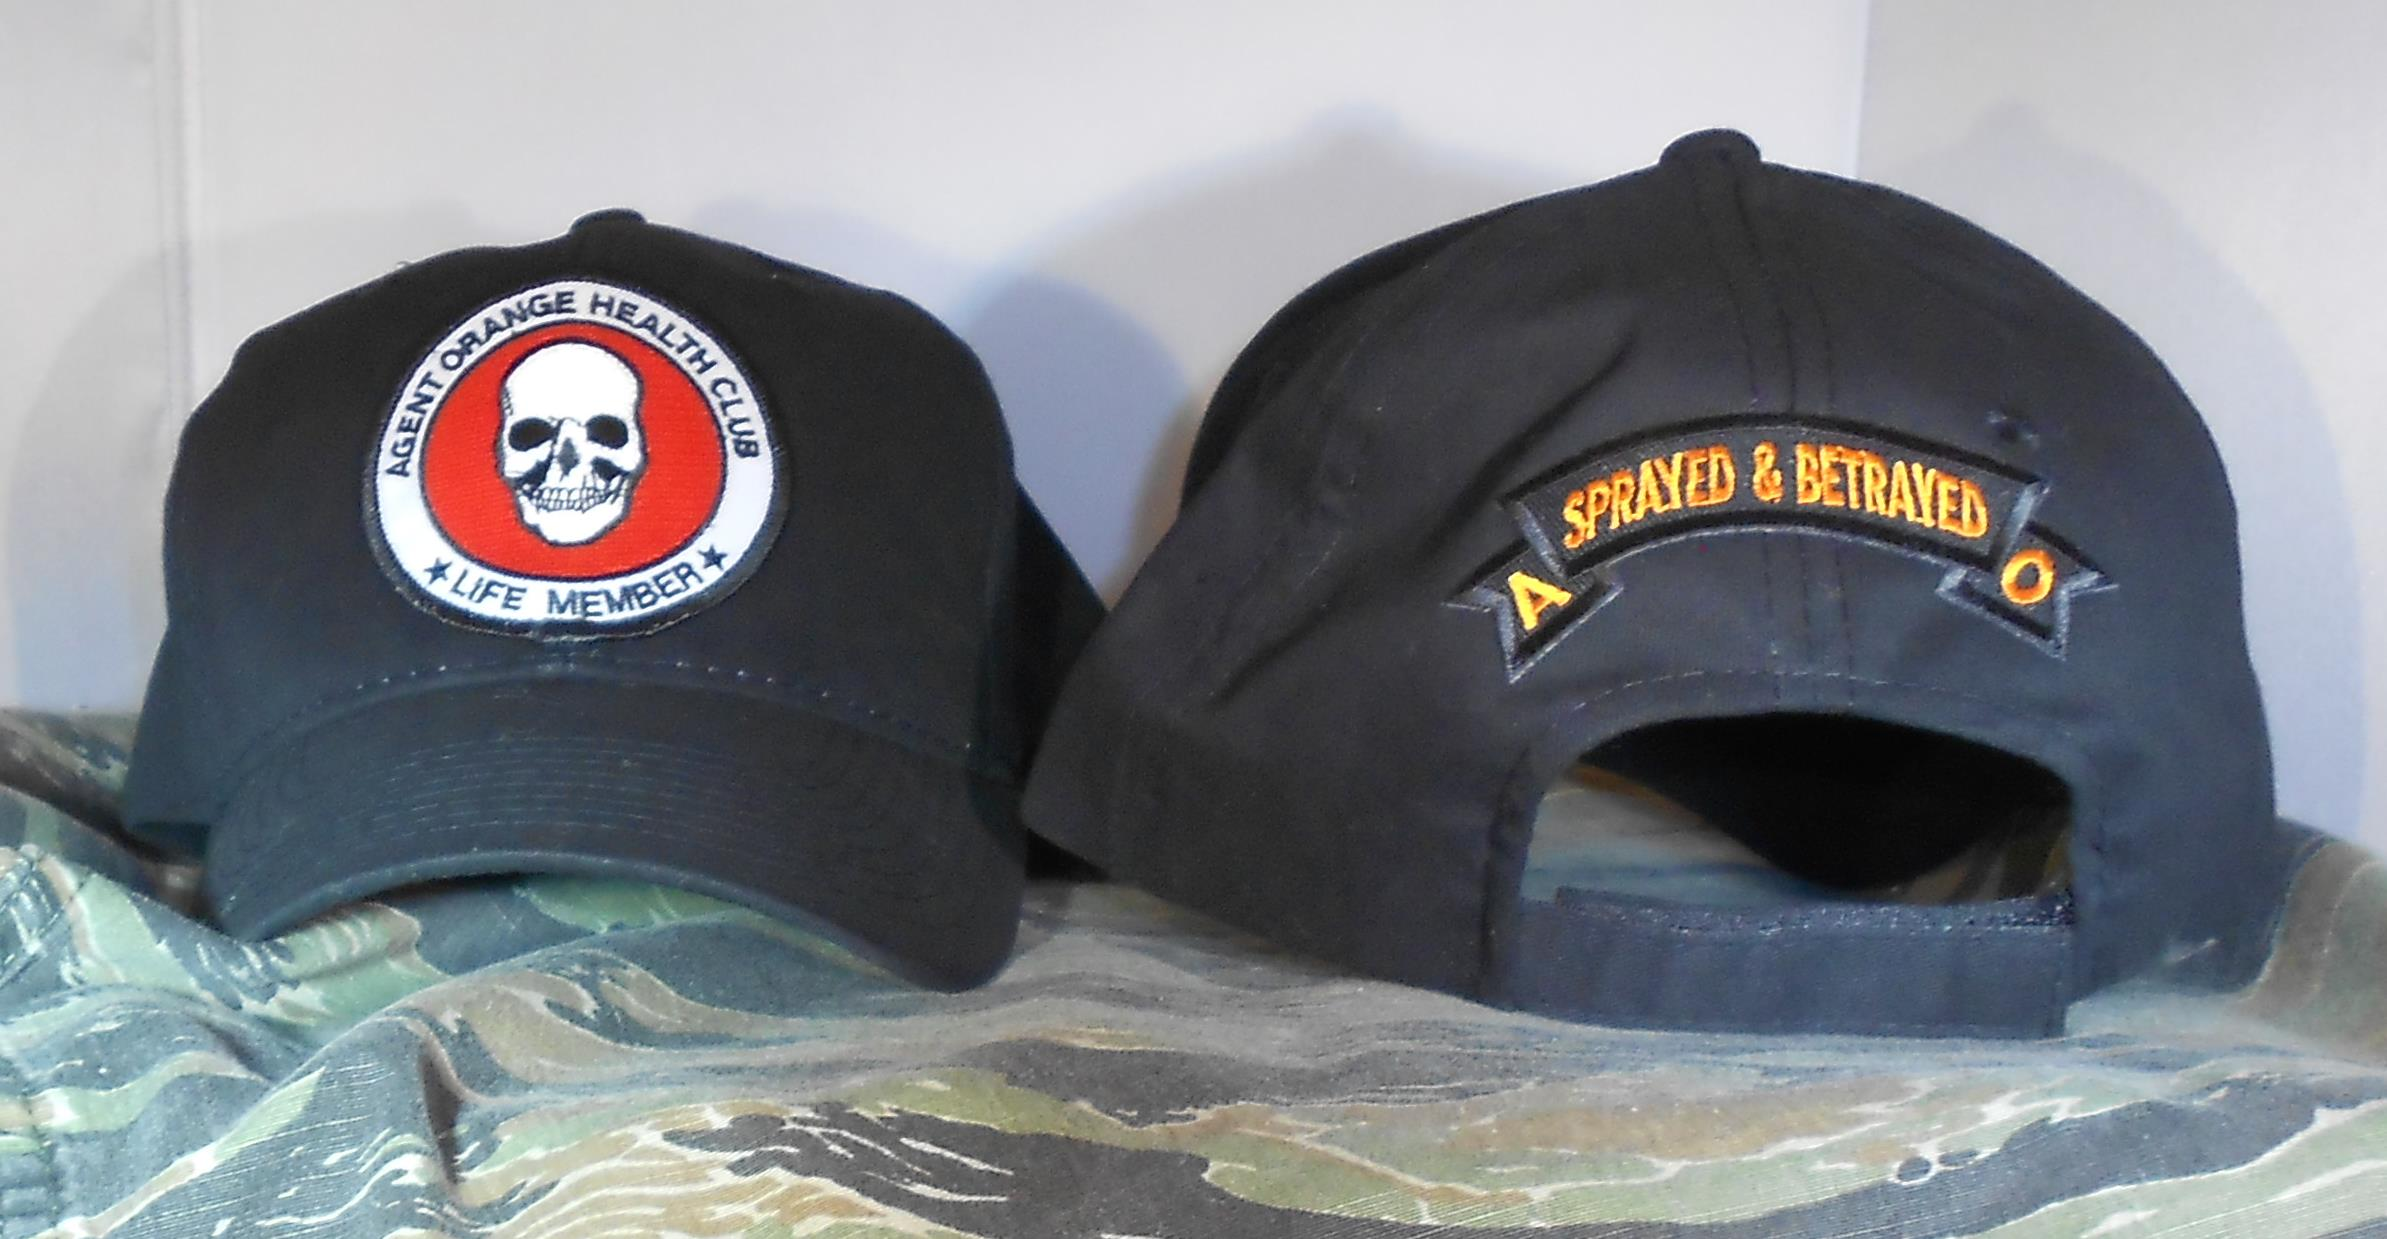 AGENT ORANGE LIFE MEMBER BLACK HATS